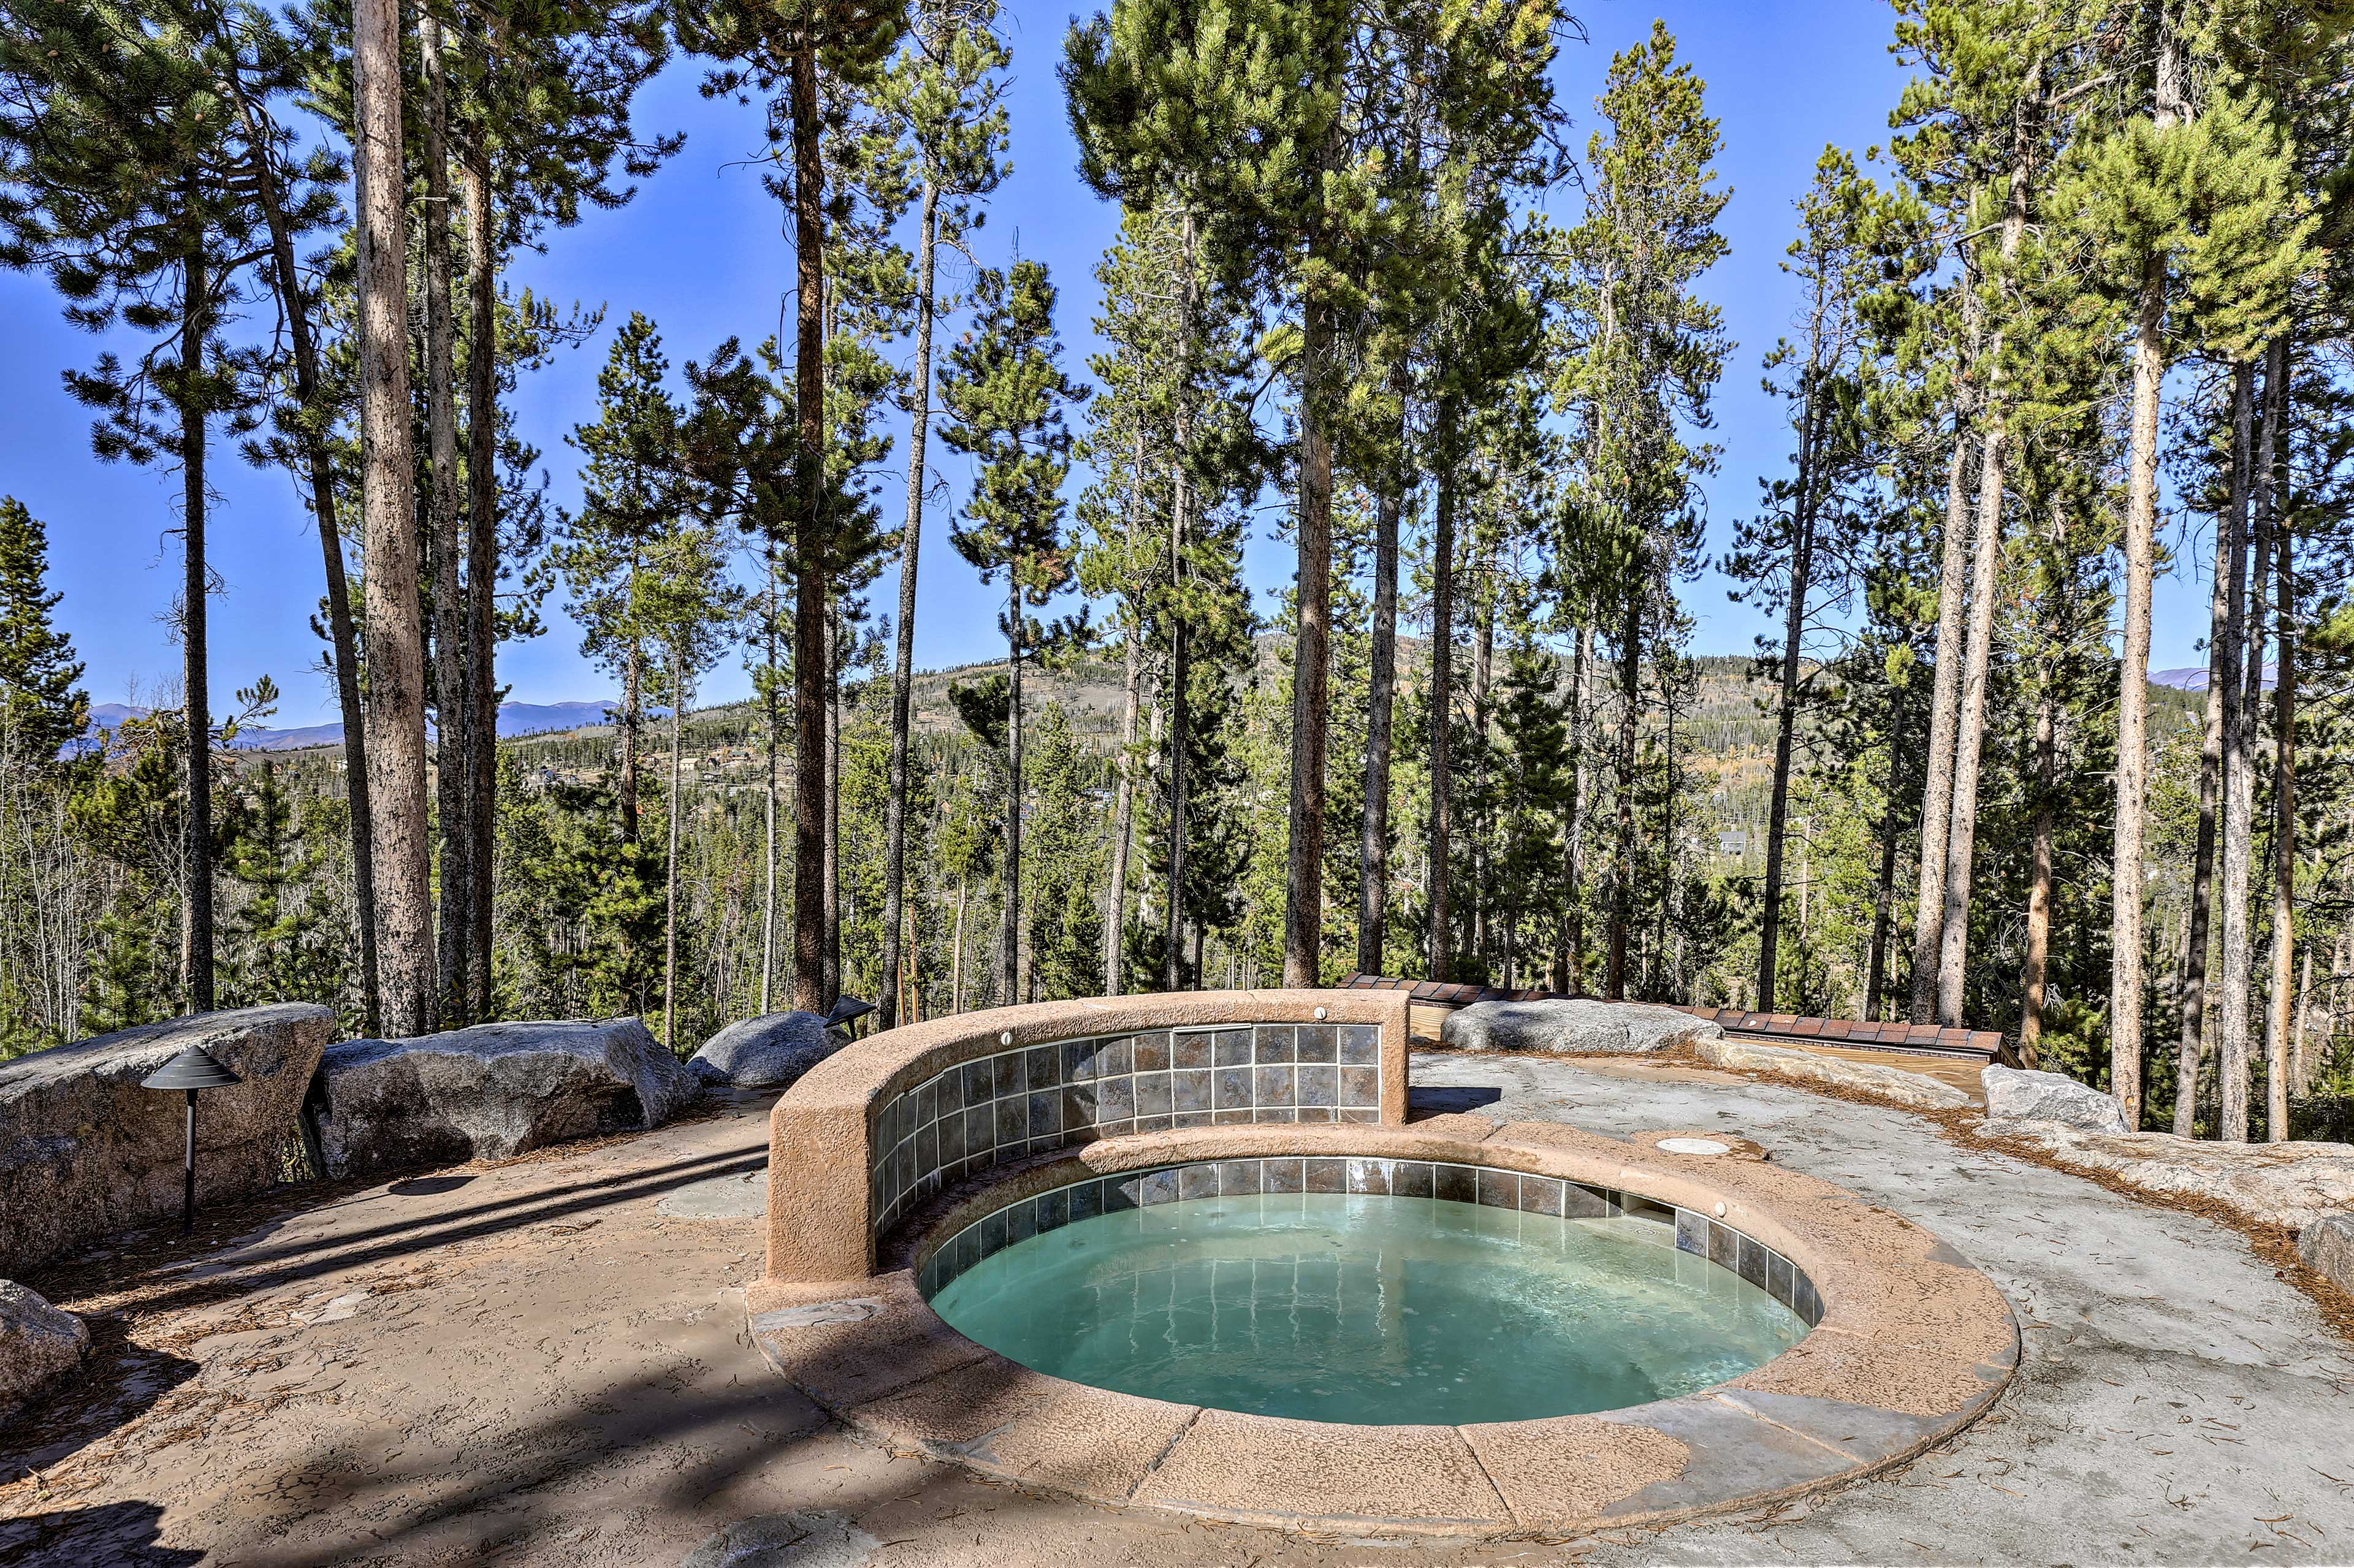 Enjoy mountain views from your private, in-ground hot tub.